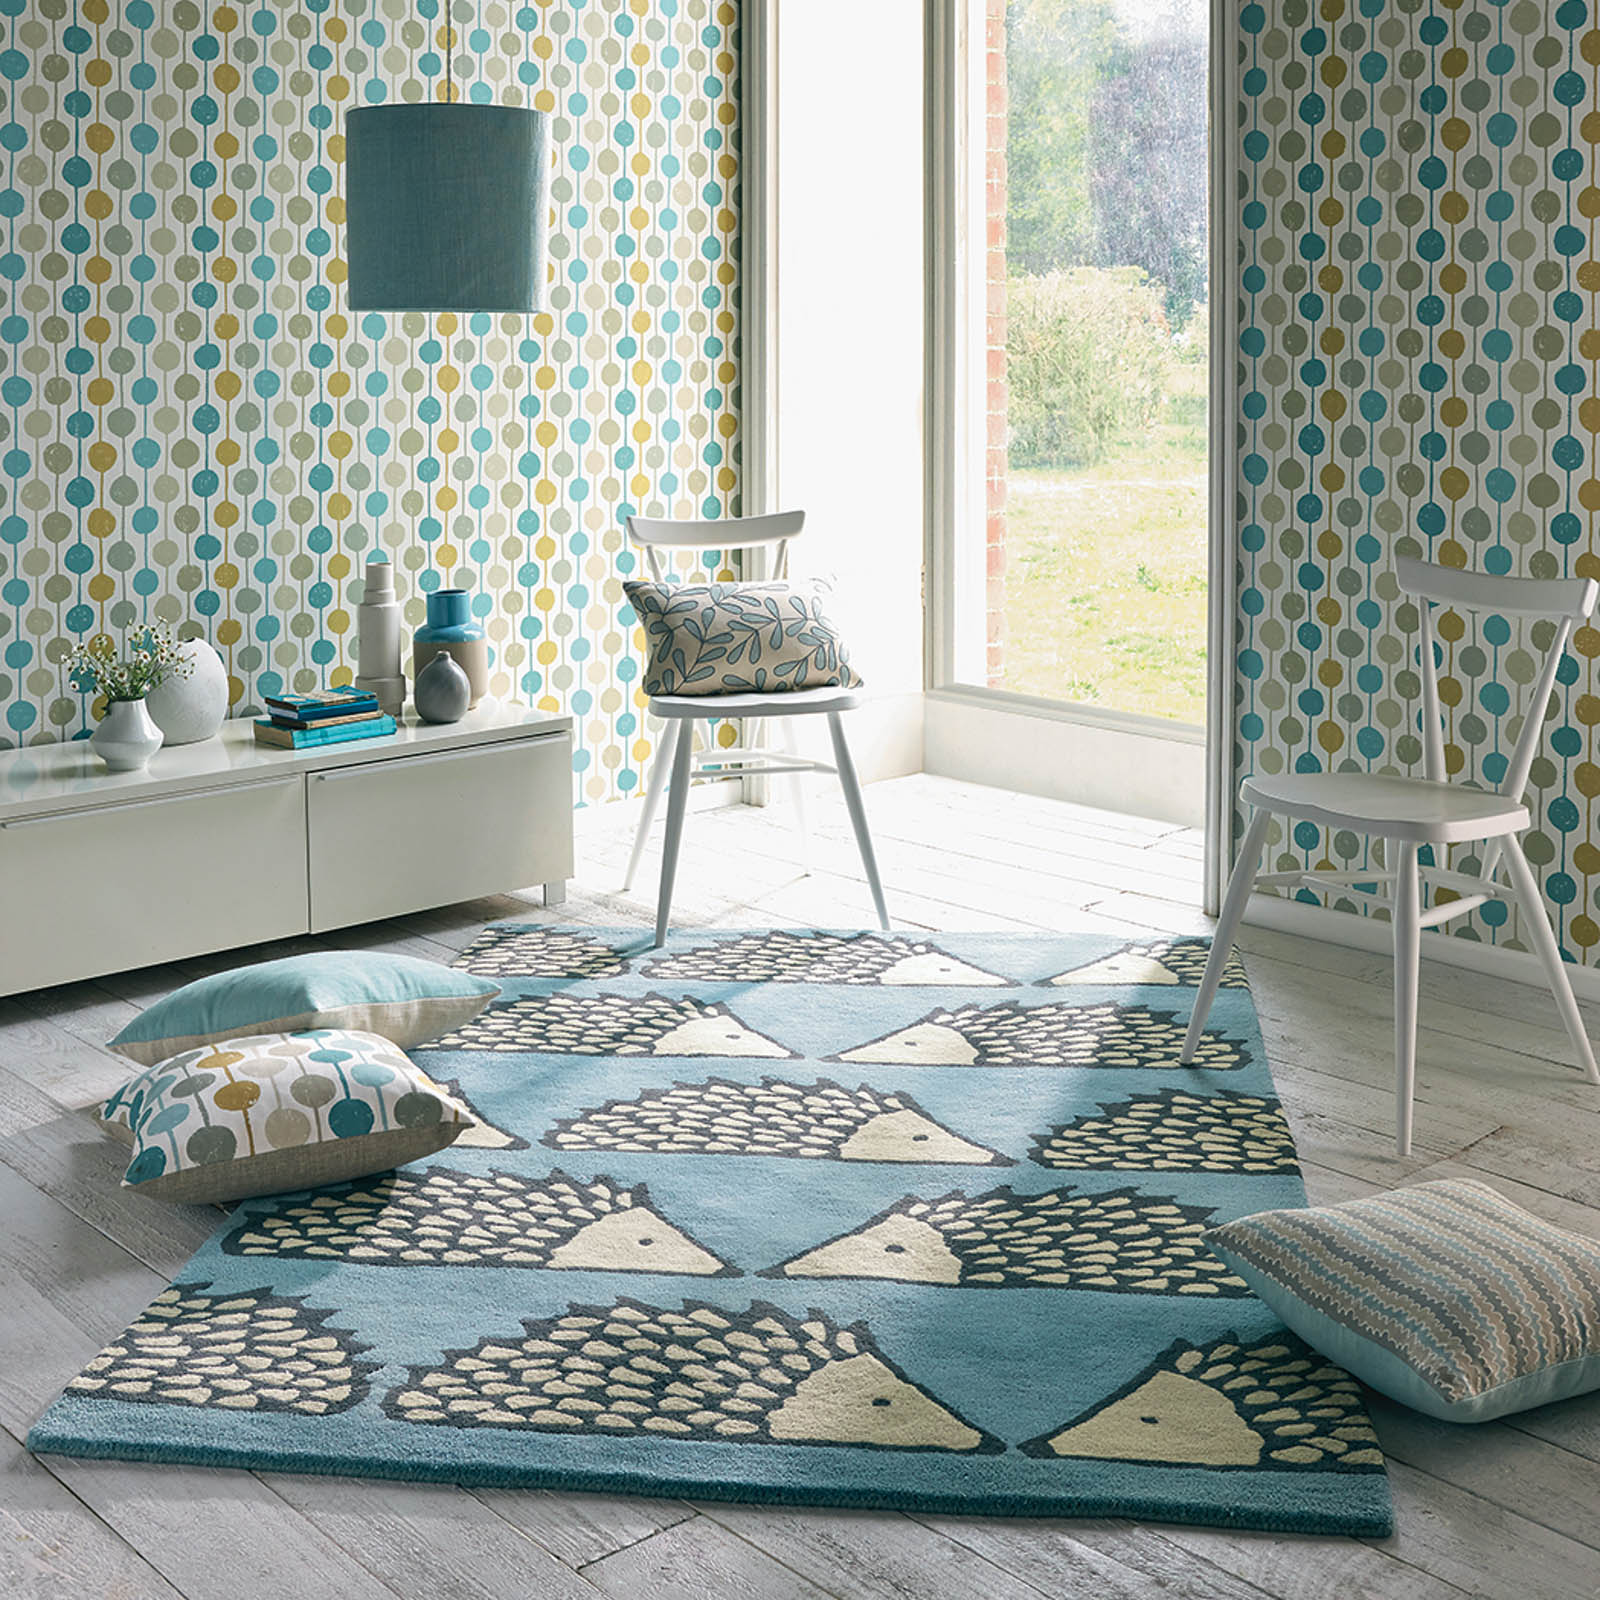 Scion spike Rugs 26808 in Marine - Free UK Delivery - The ...